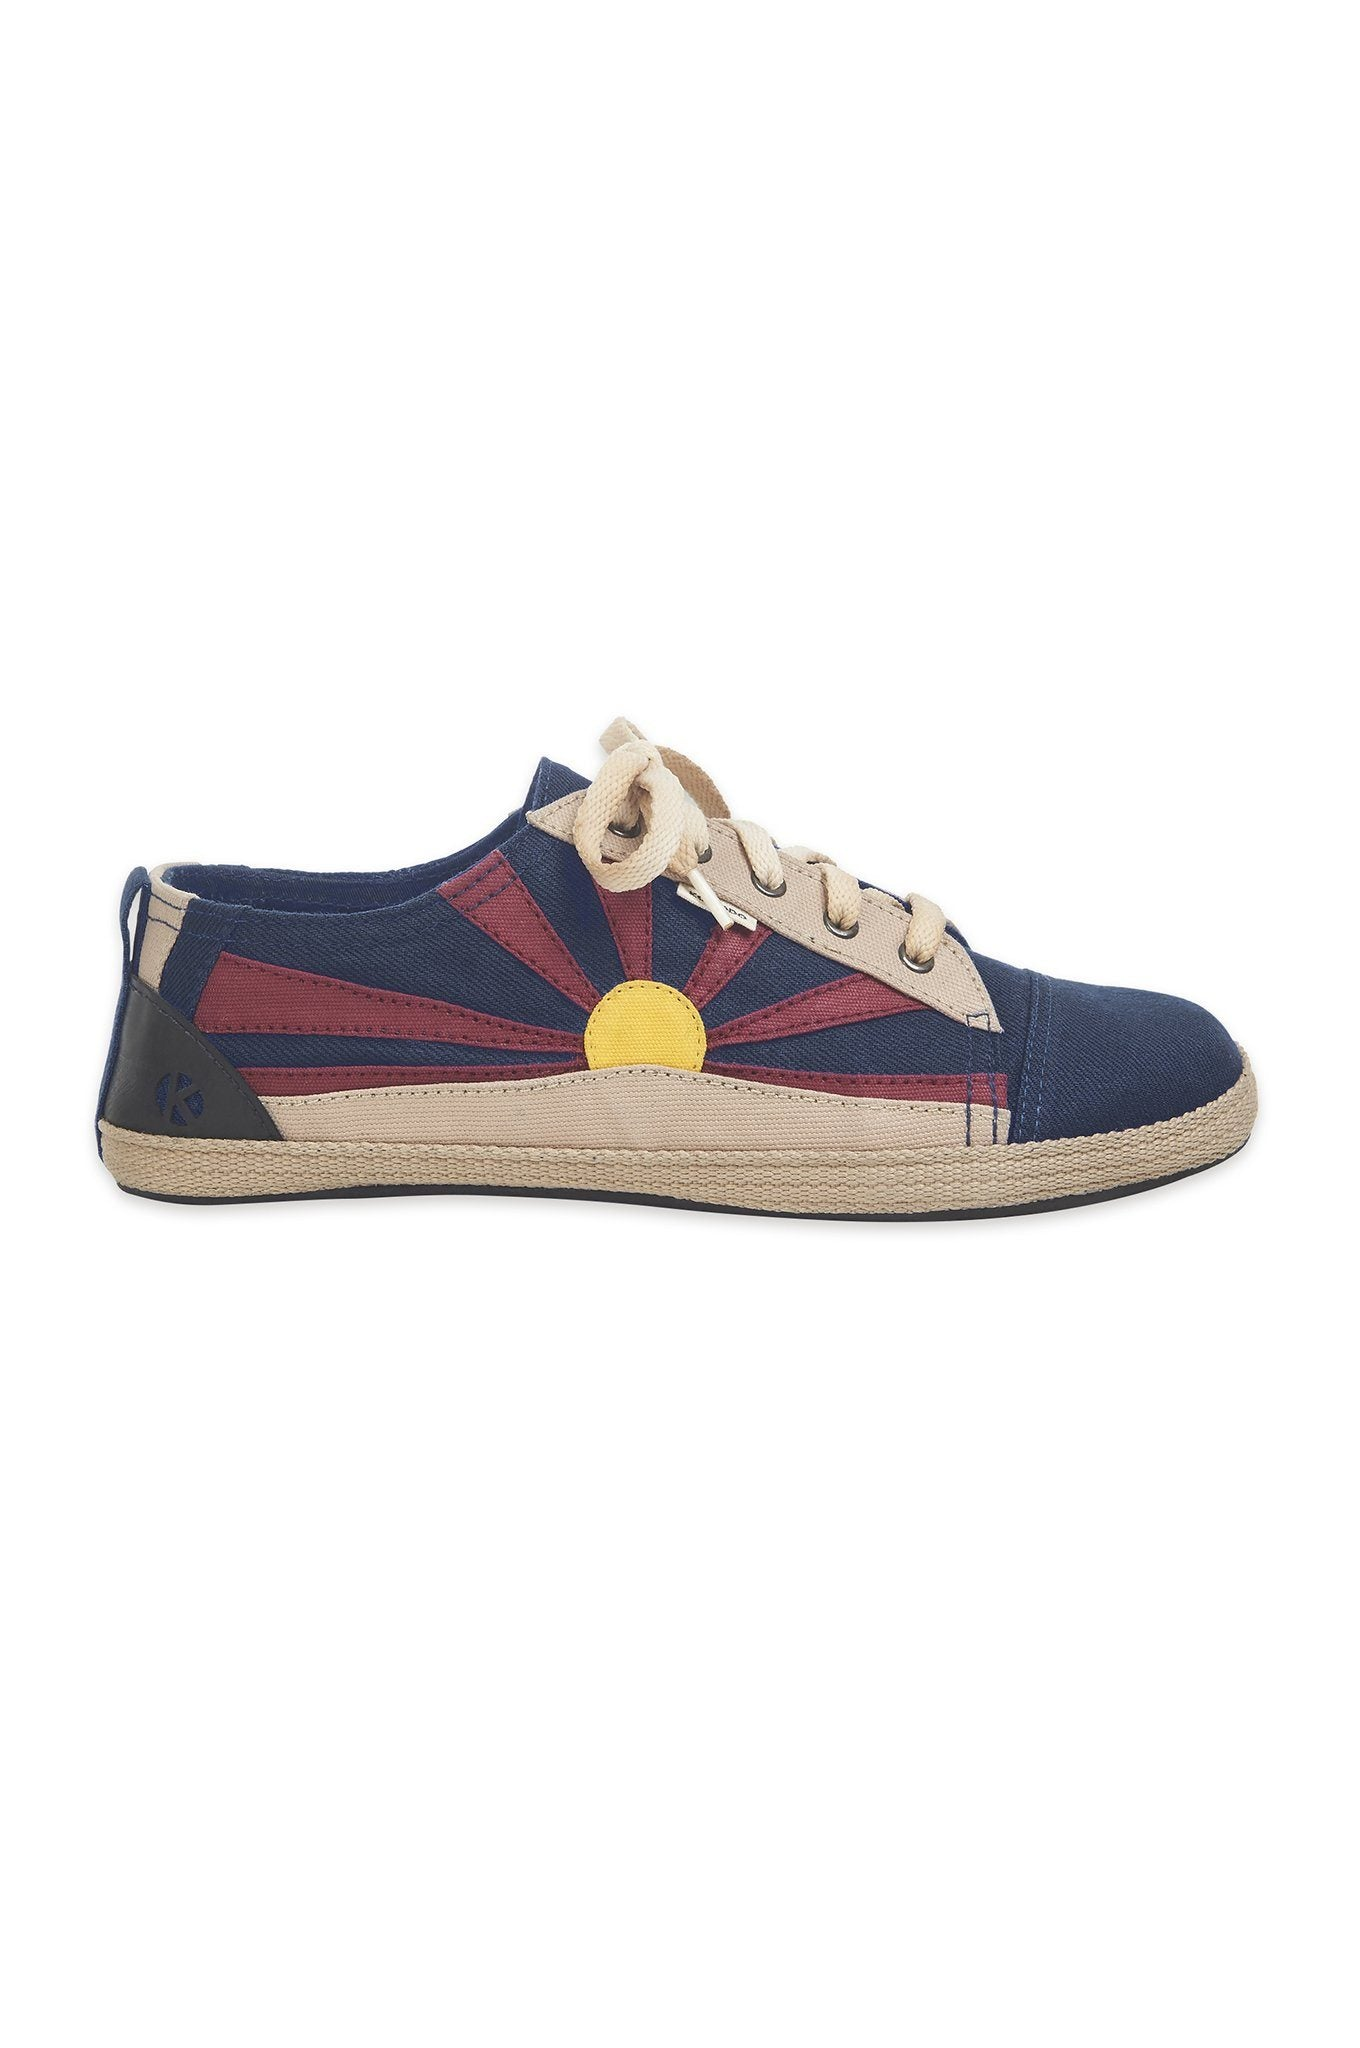 TIBET Navy Womens Shoes - Komodo Fashion